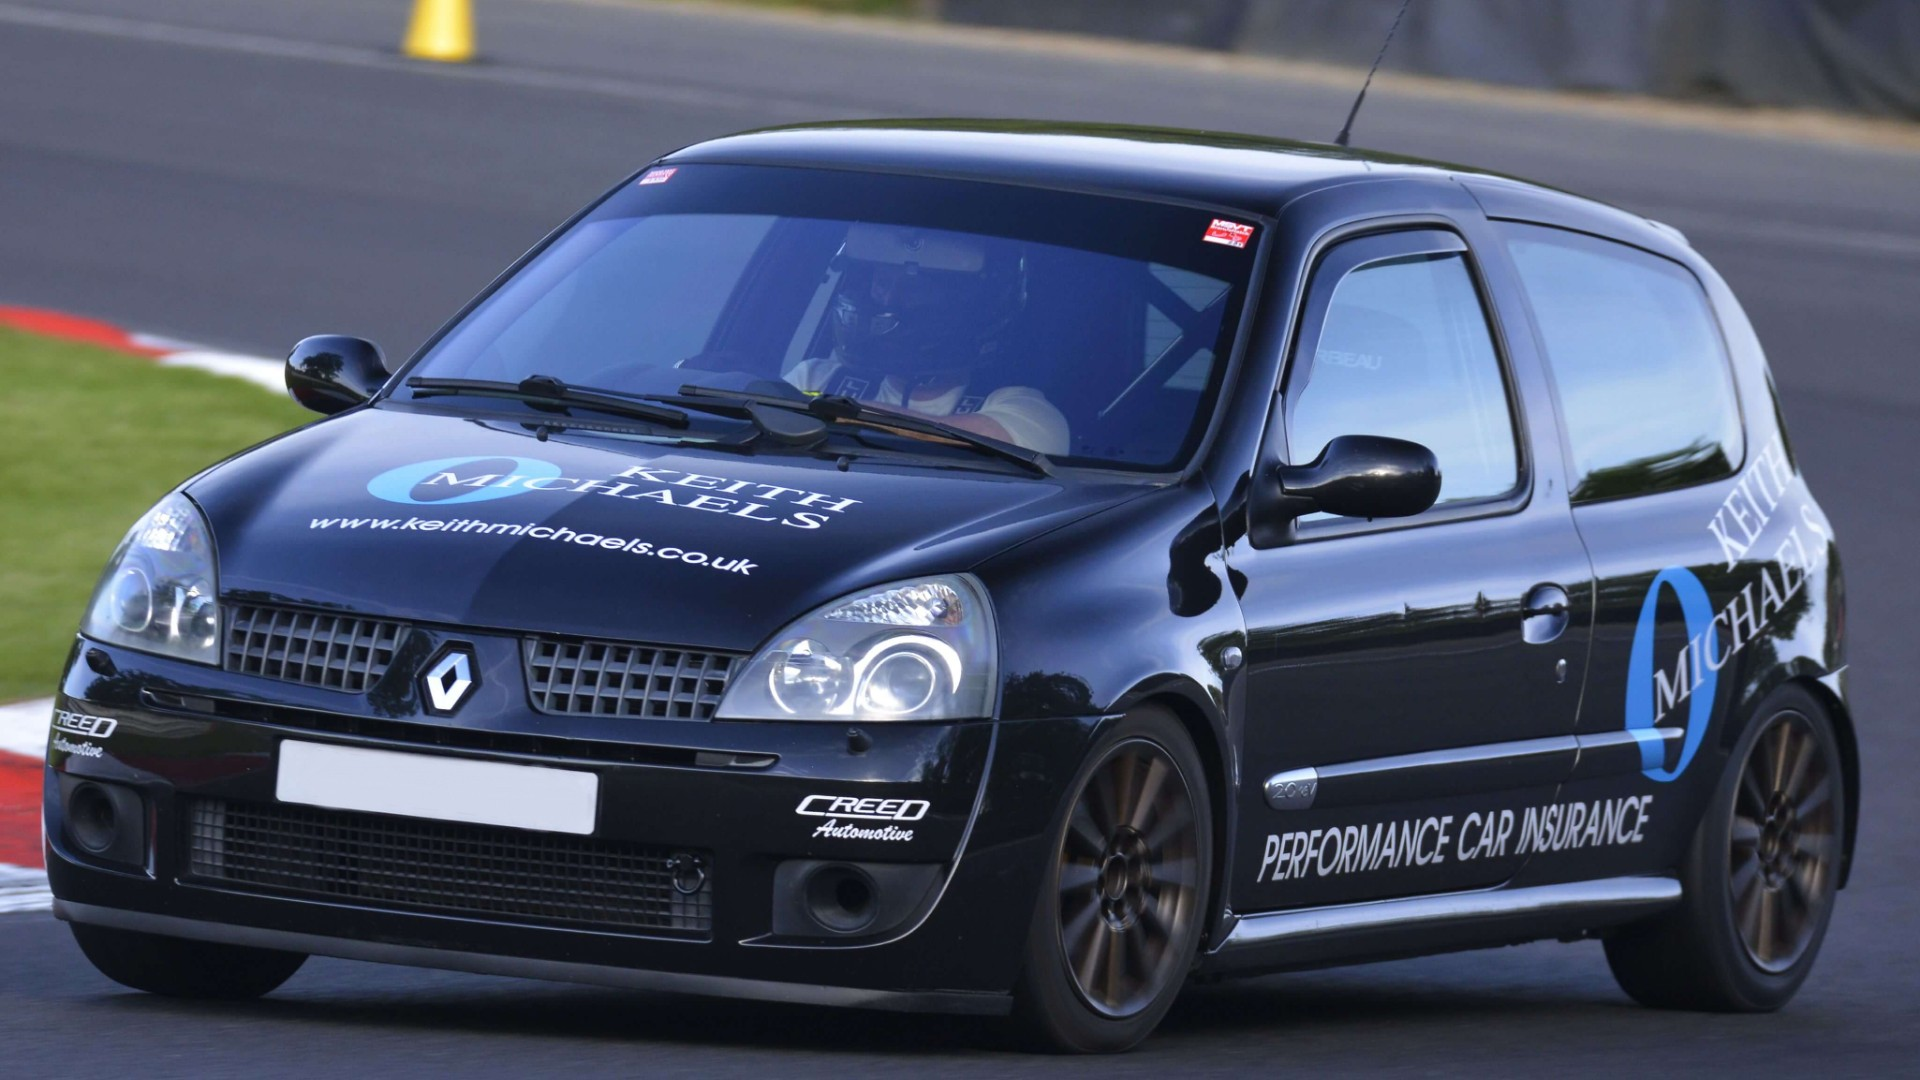 Clio Renaultsport Clio V6 Rs Car Insurance